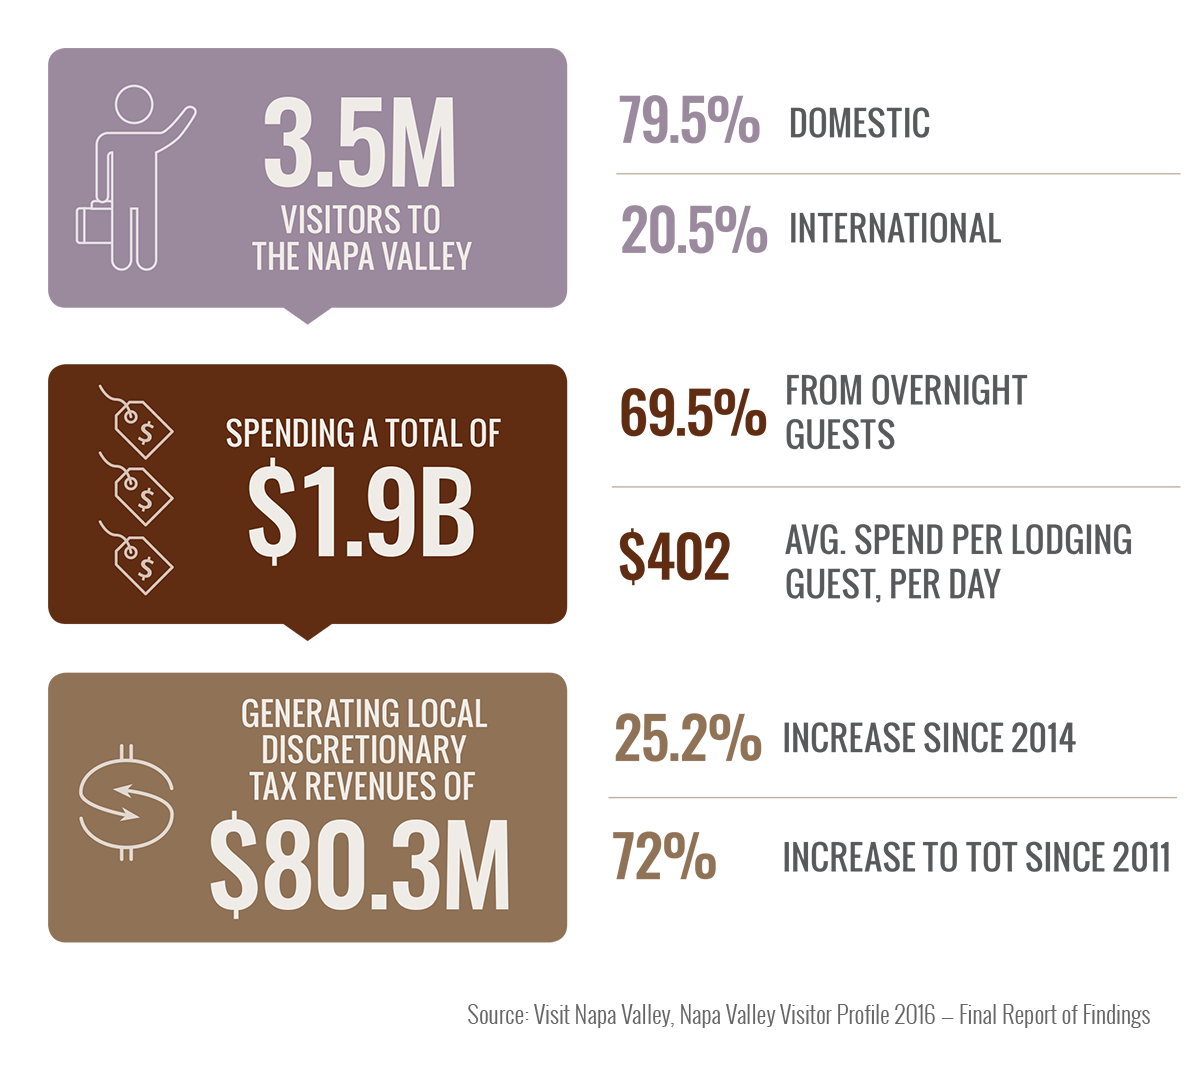 Tourism Overview infographic